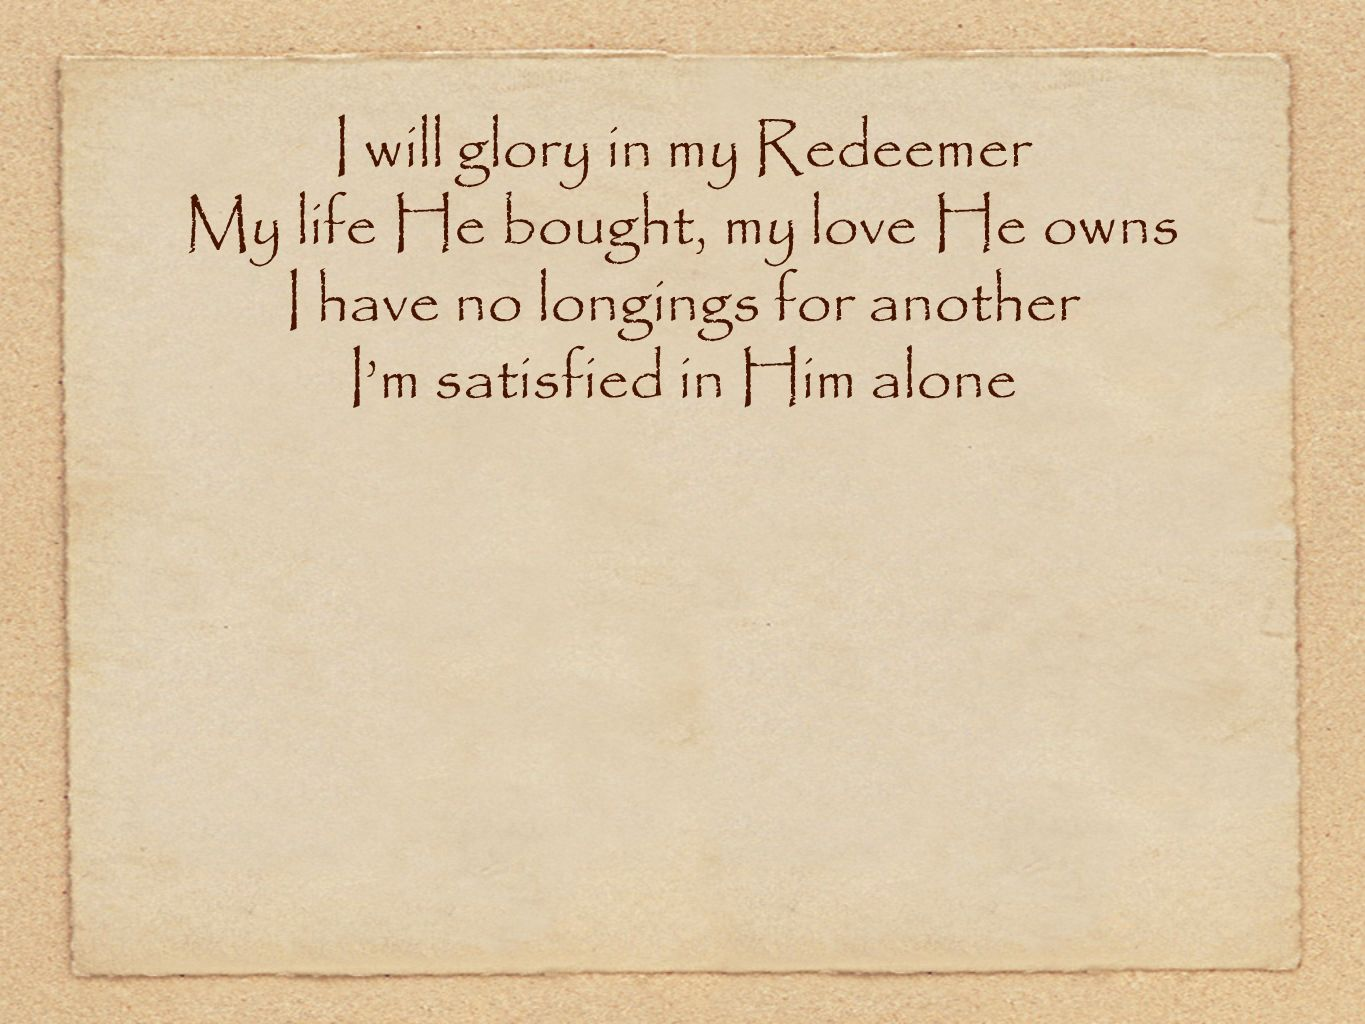 I will glory in my Redeemer My life He bought, my love He owns I have no longings for another Im satisfied in Him alone